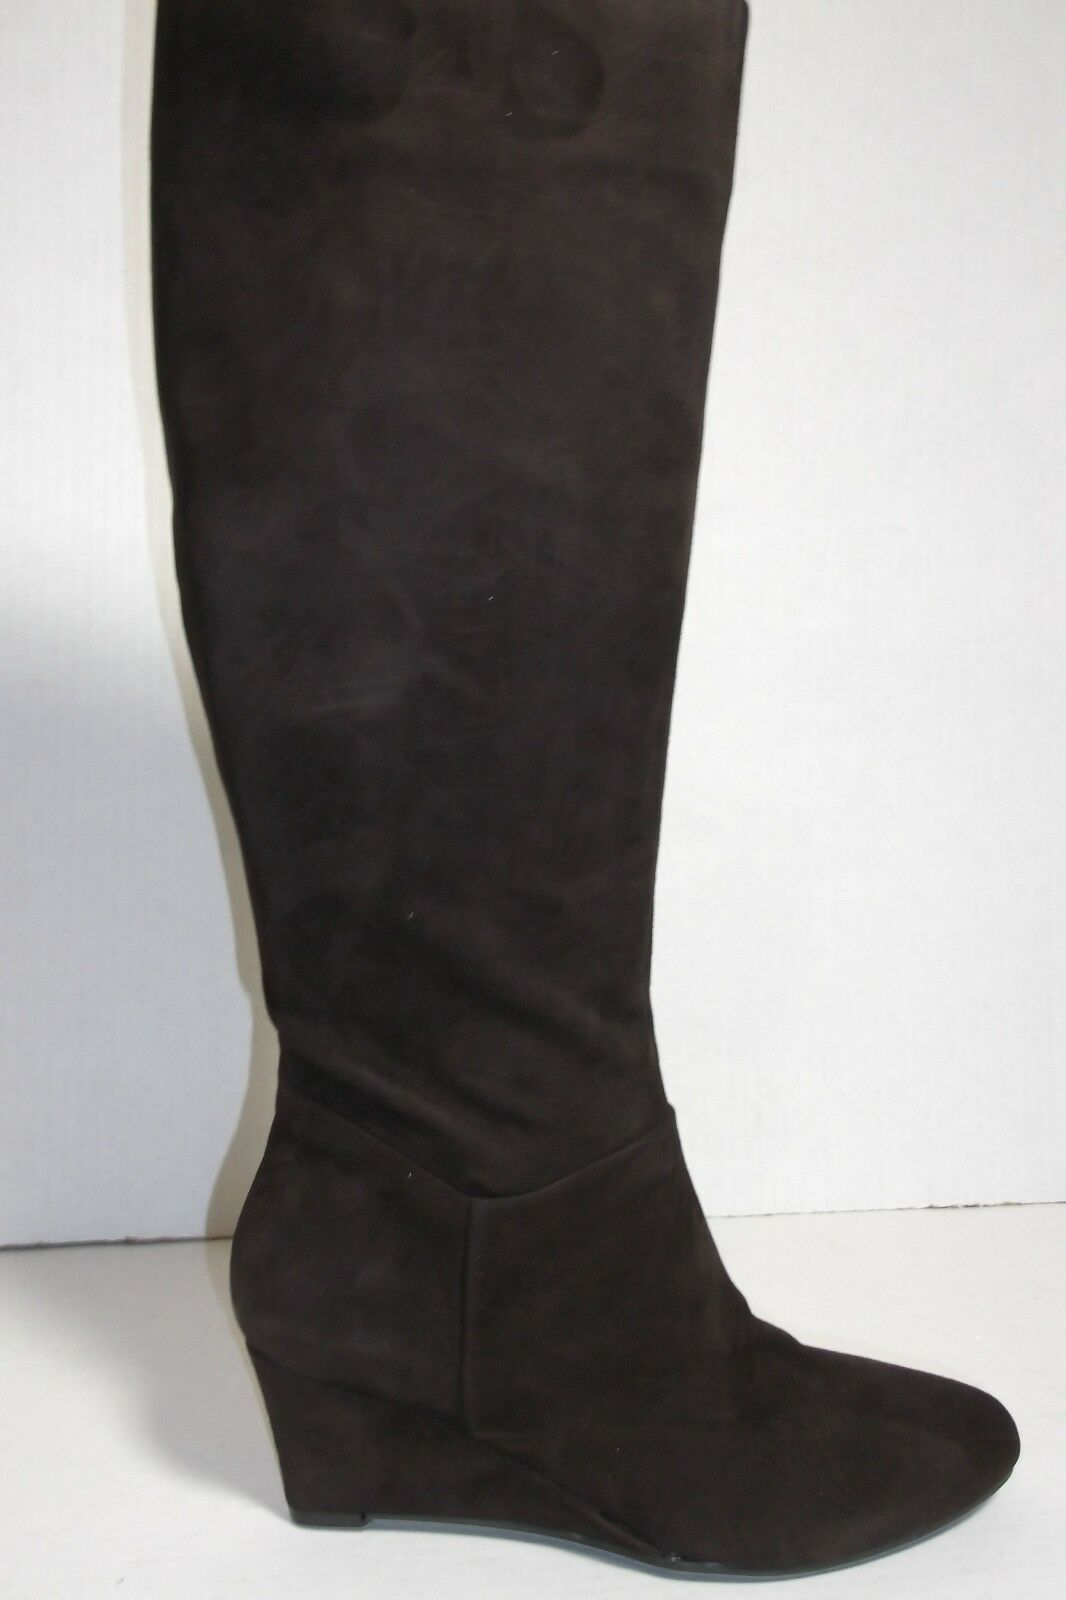 MARC FISHER MF VERIFIES tall wedge daek marron femmes  bottes SZ 5.5M NEW IN BOX